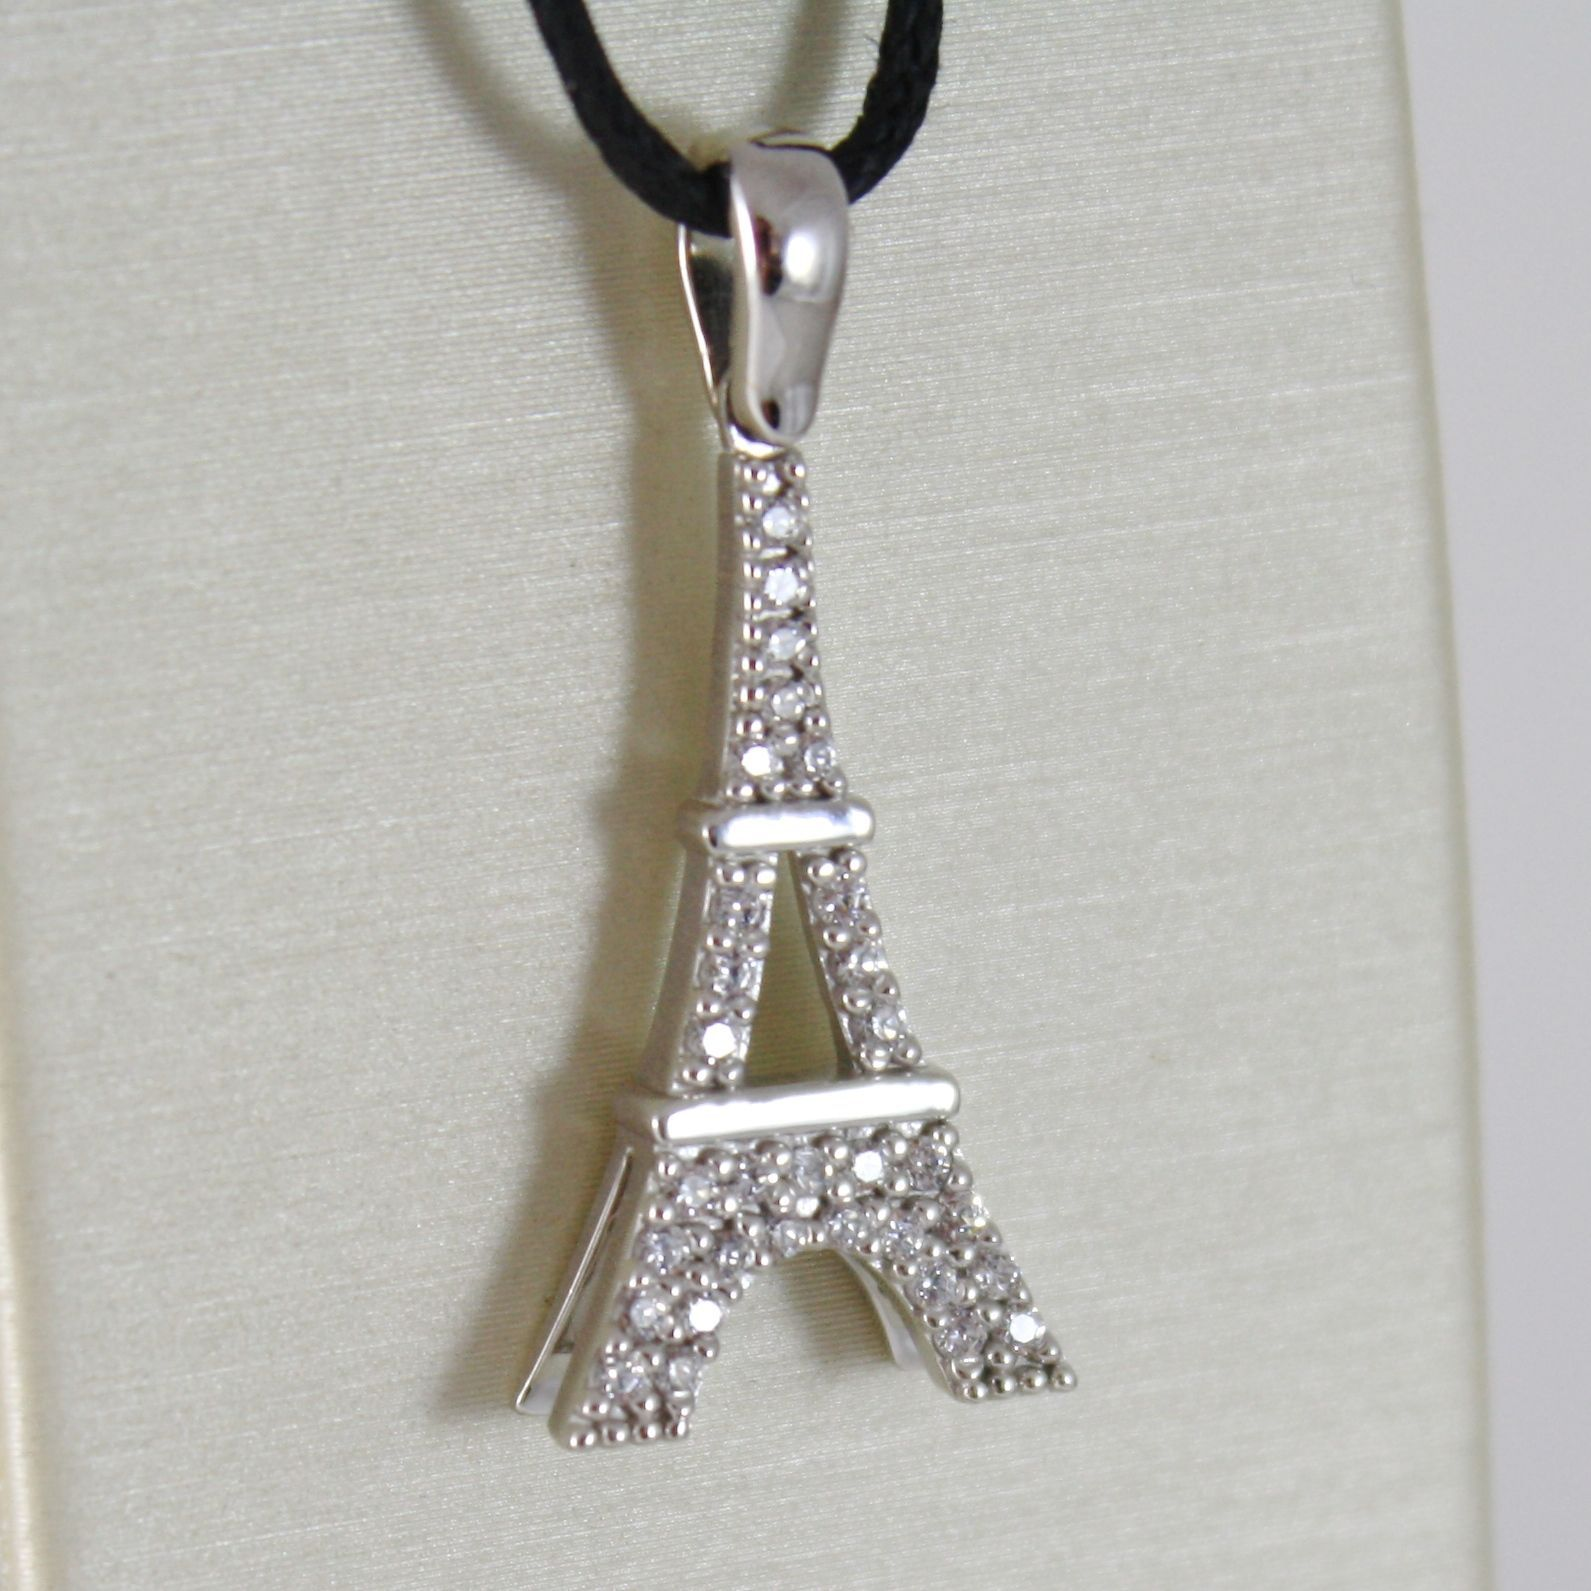 WHITE GOLD PENDANT 750 18K, EIFFEL TOWER, LONG 2.8 CM WITH ZIRCON